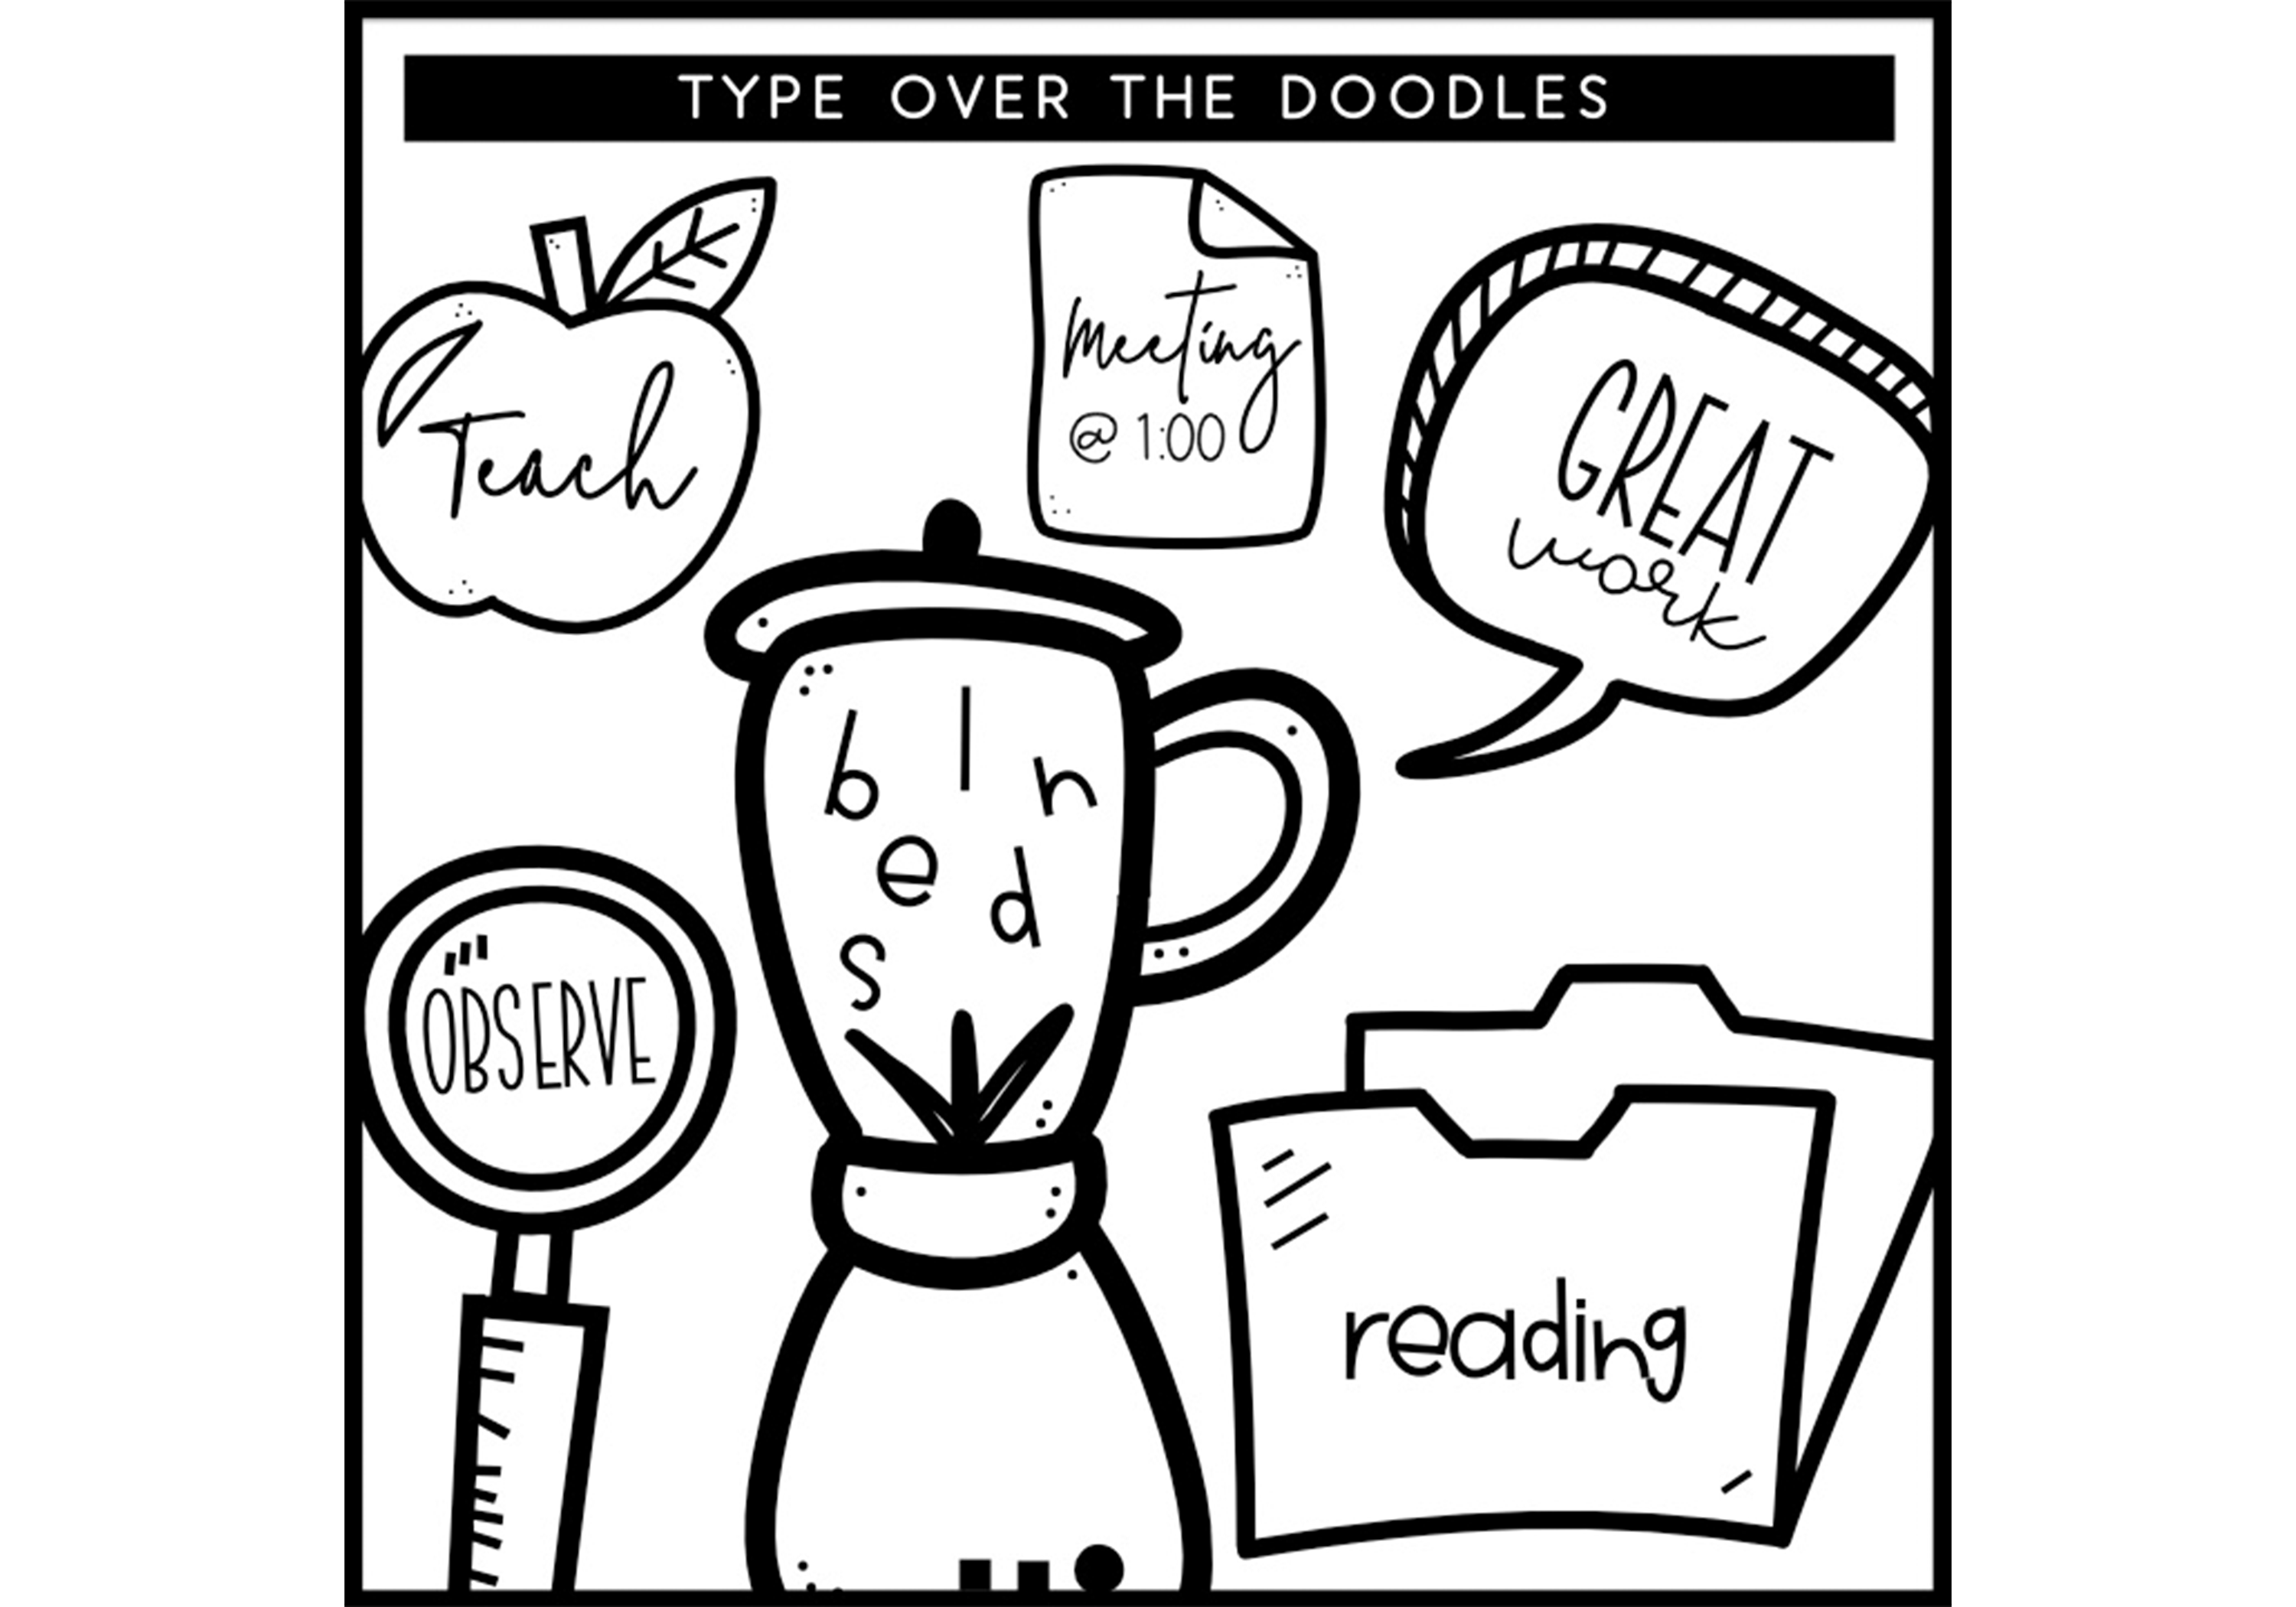 All The Things - A Doodle Font example image 6